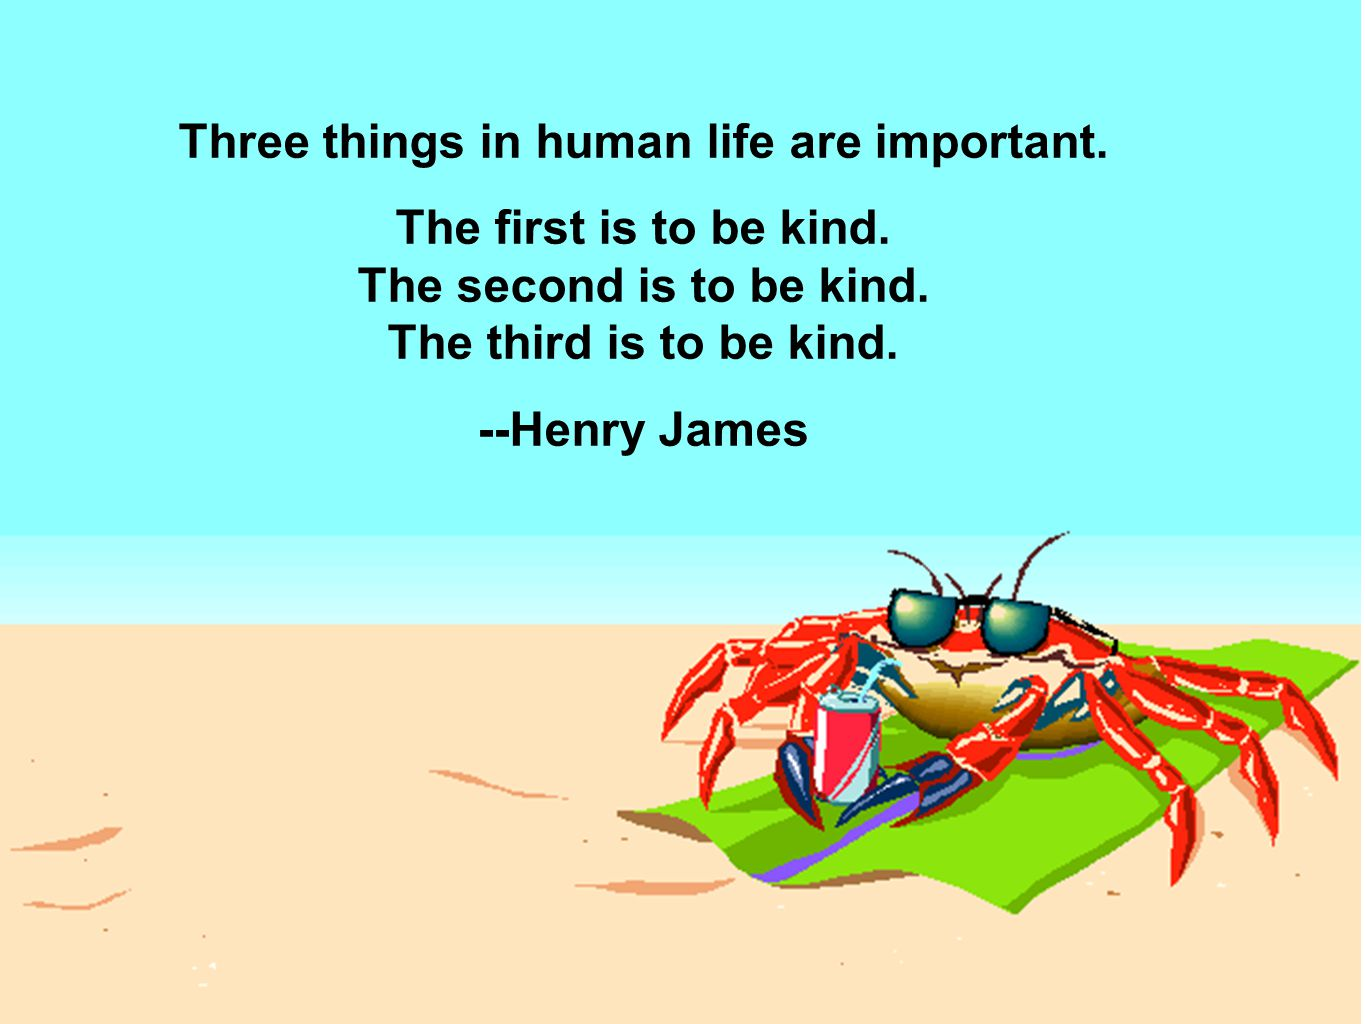 Three things in human life are important. The first is to be kind.